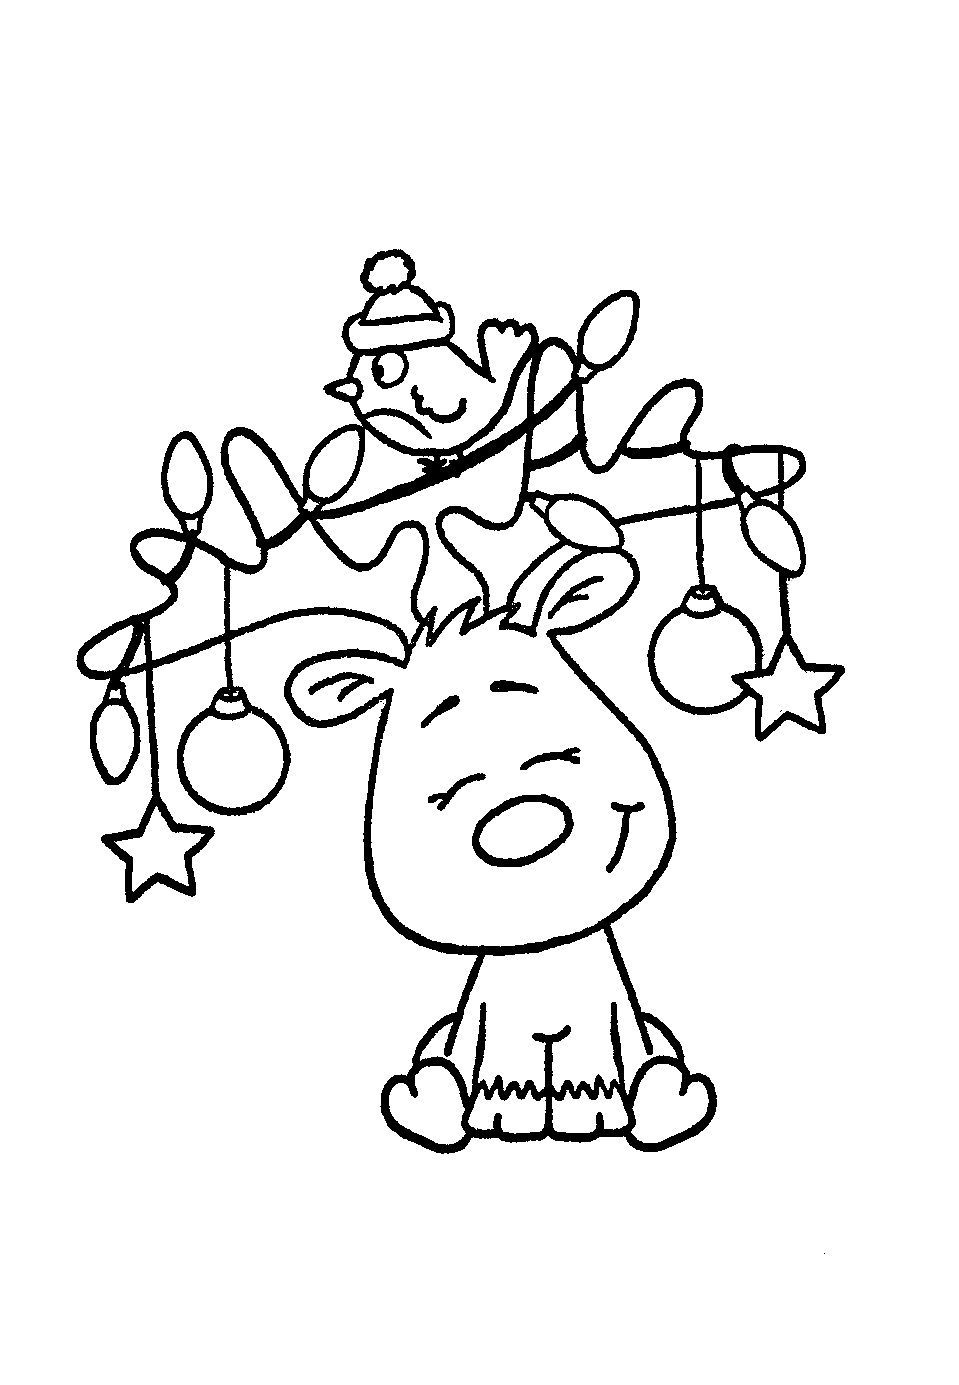 Printable Moose Coloring Pages For Kids | 1385x959